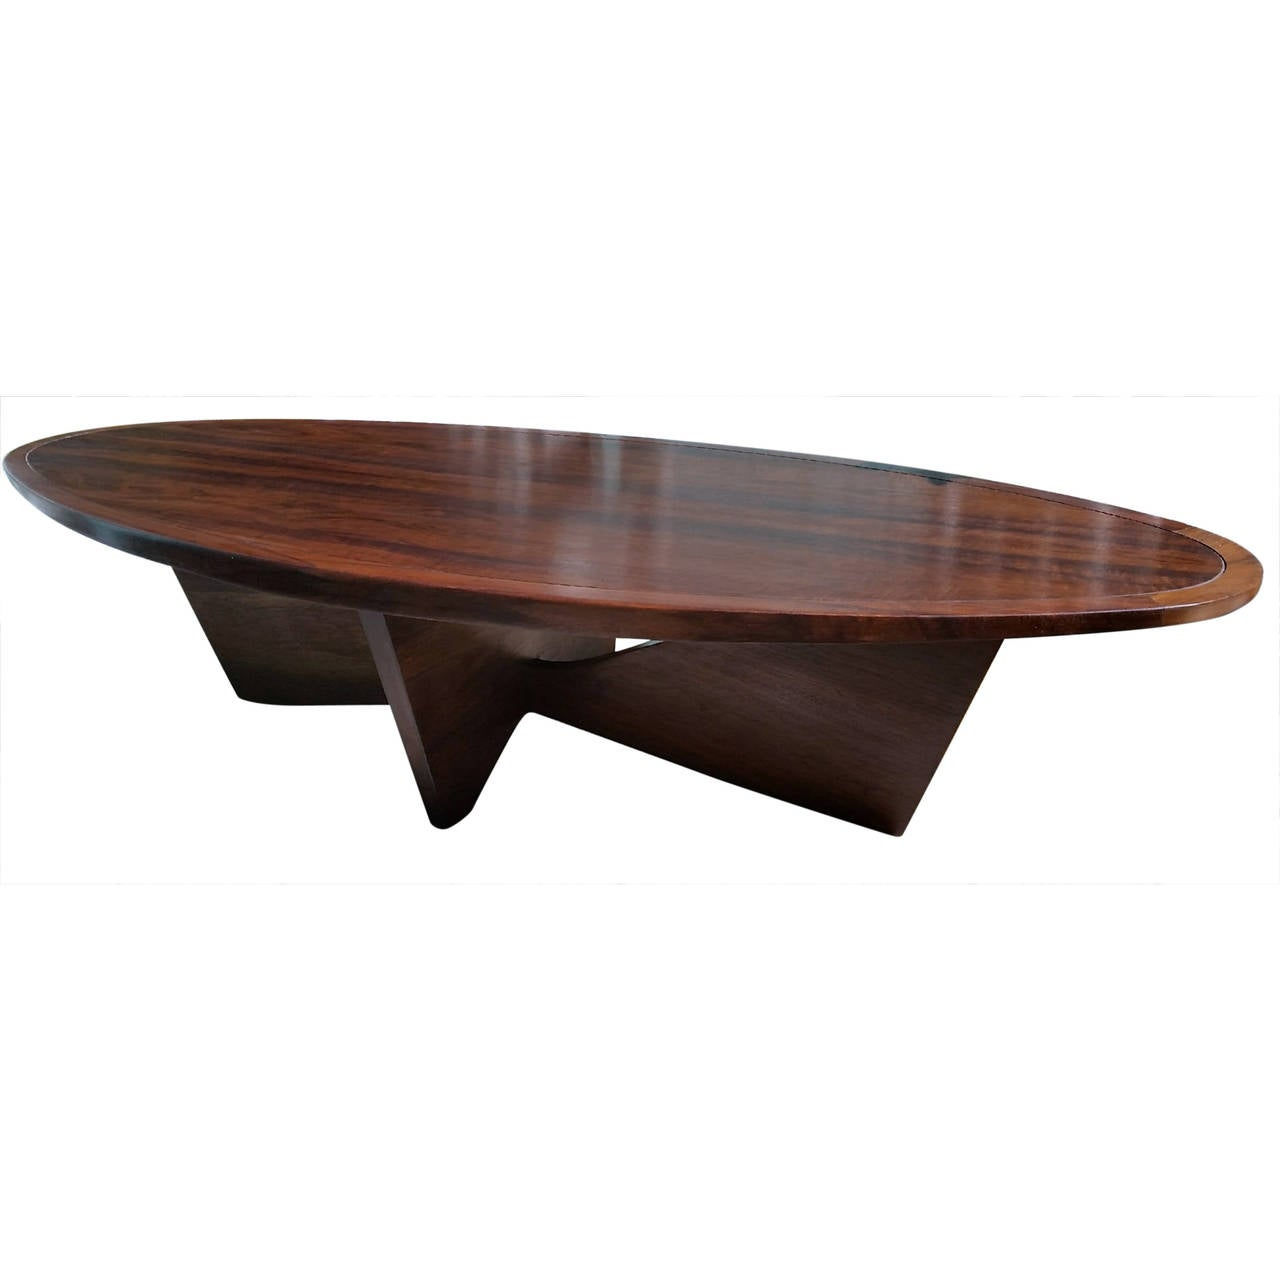 Rare George Nakashima Oval Coffee Table Bow Tie Base Widdicomb 1958 At 1stdibs